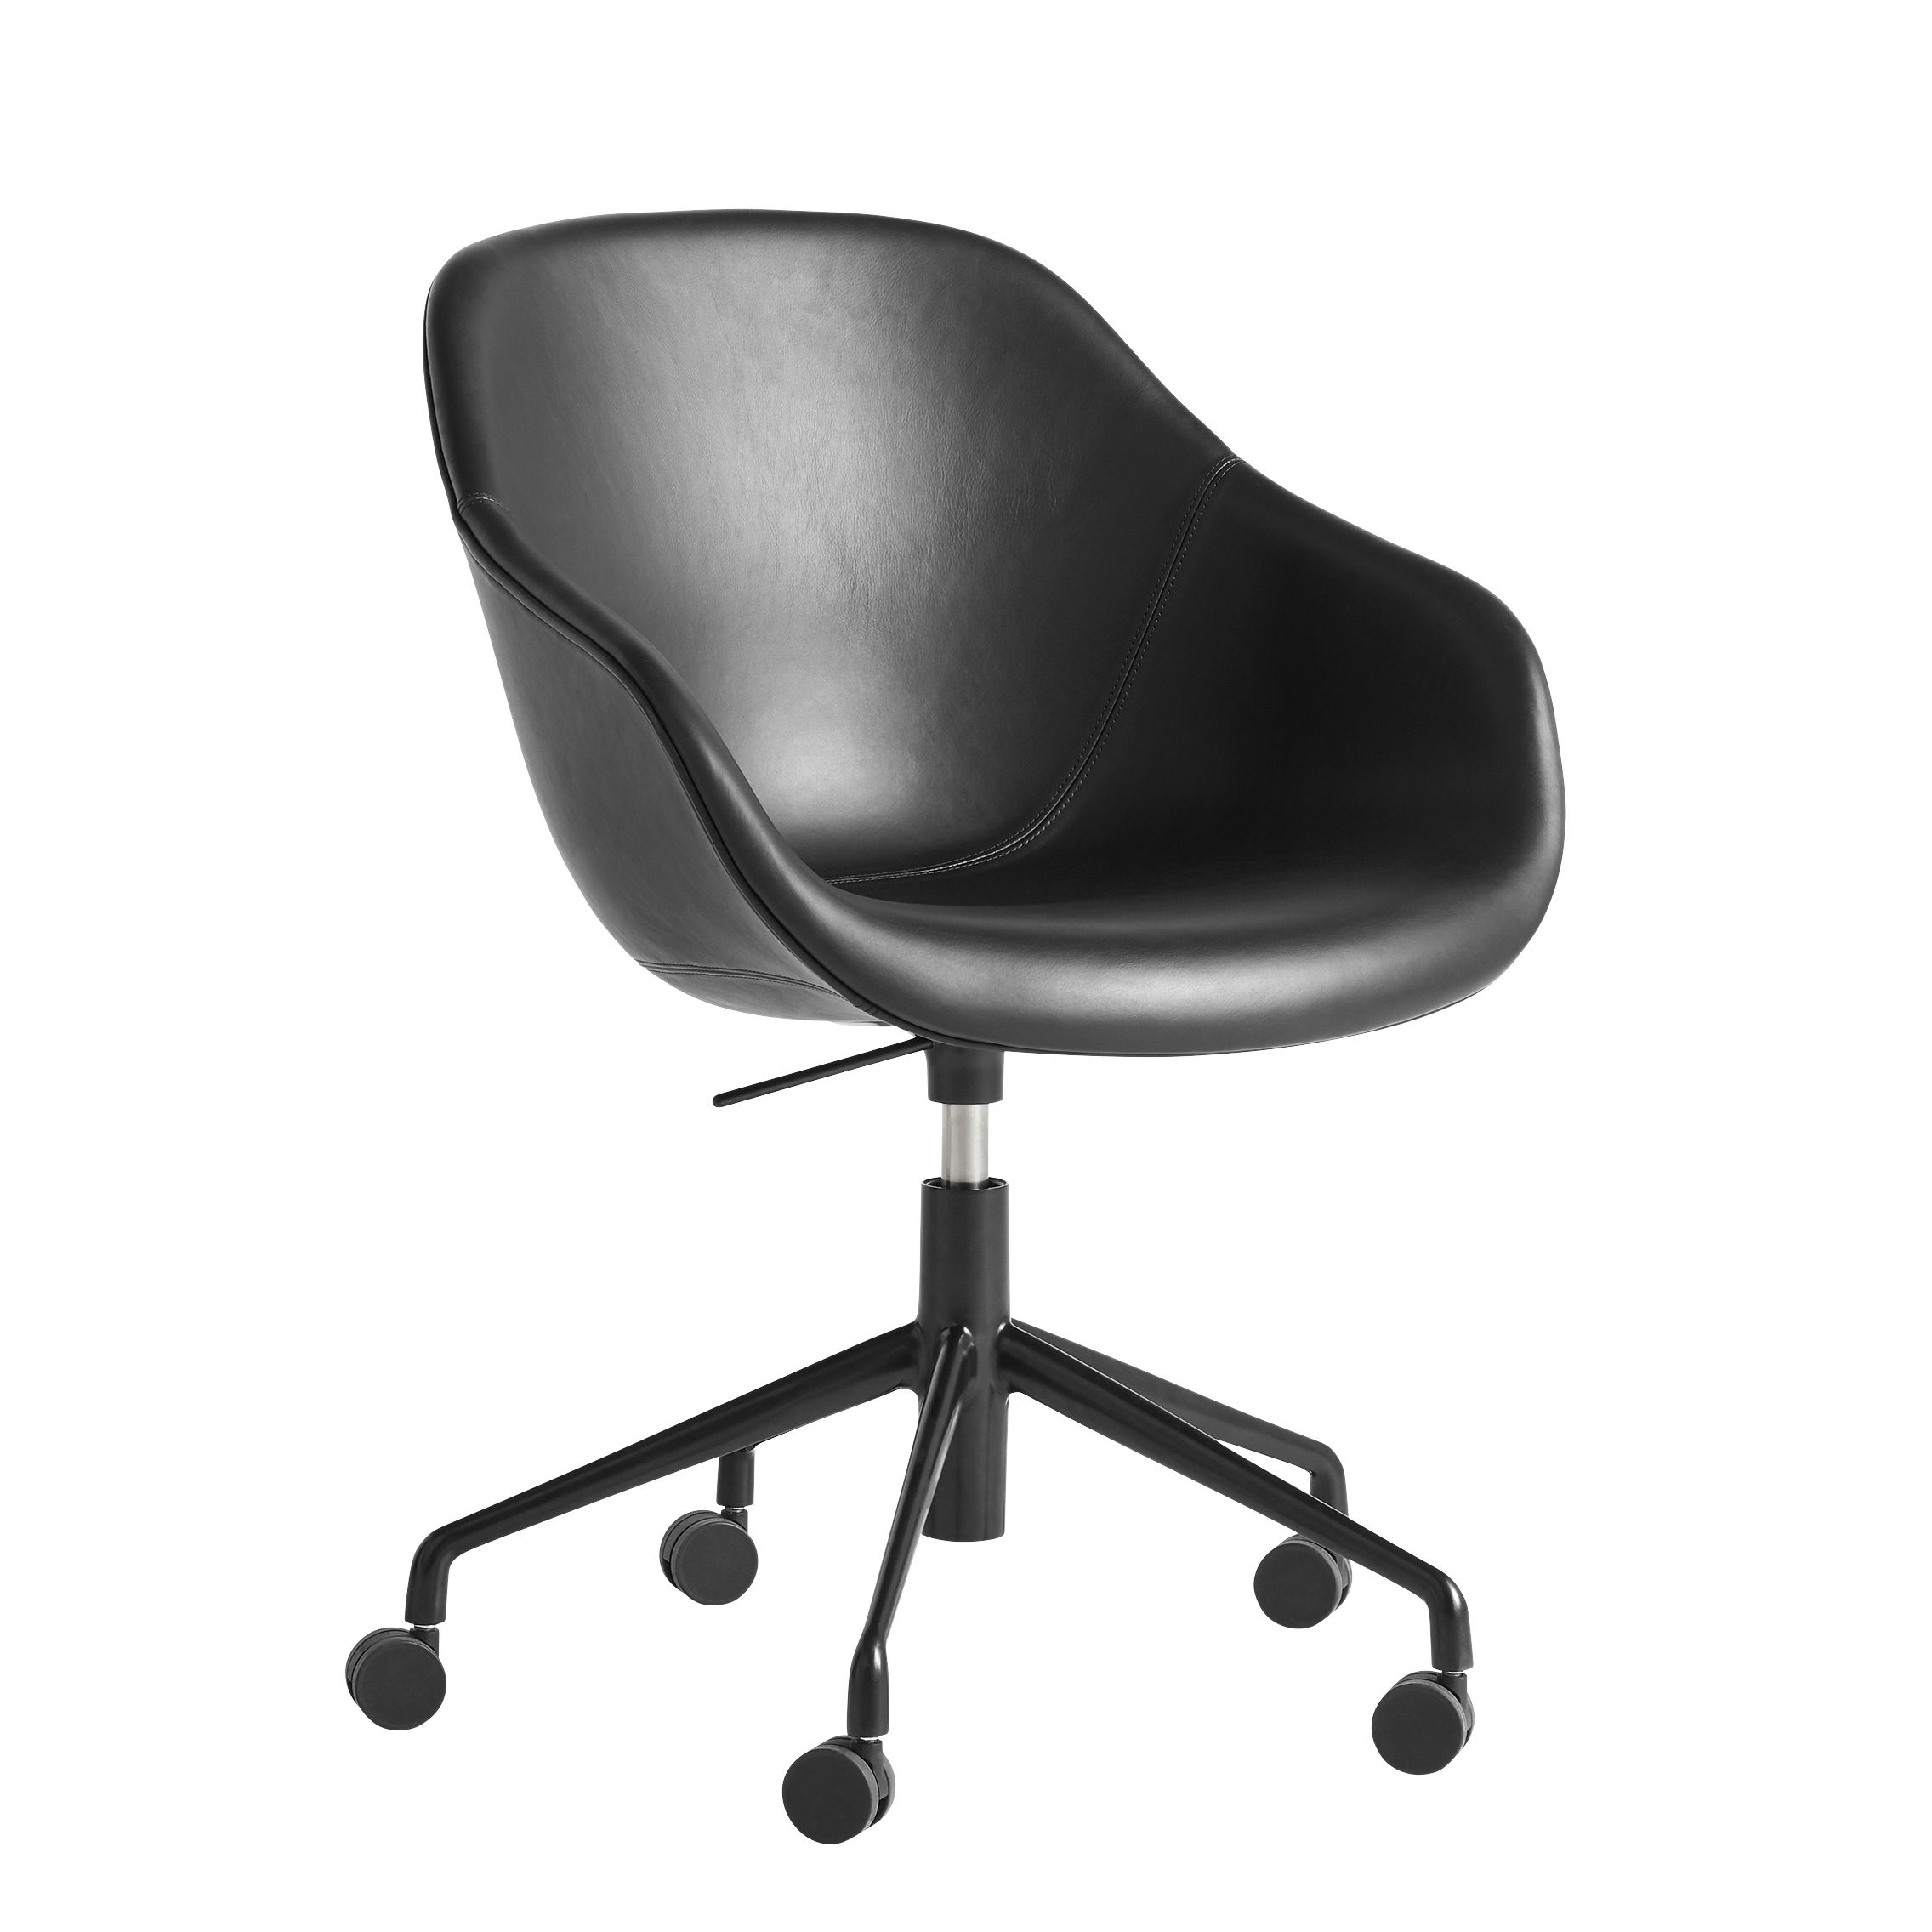 Furniture - Office Chairs - About a chair AAC153 Armchair on casters - / Padded - High backrest - Full leather by Hay - Black leather / Black base - Leather, Painted cast aluminium, Polyurethane foam, Renforced polypropylen